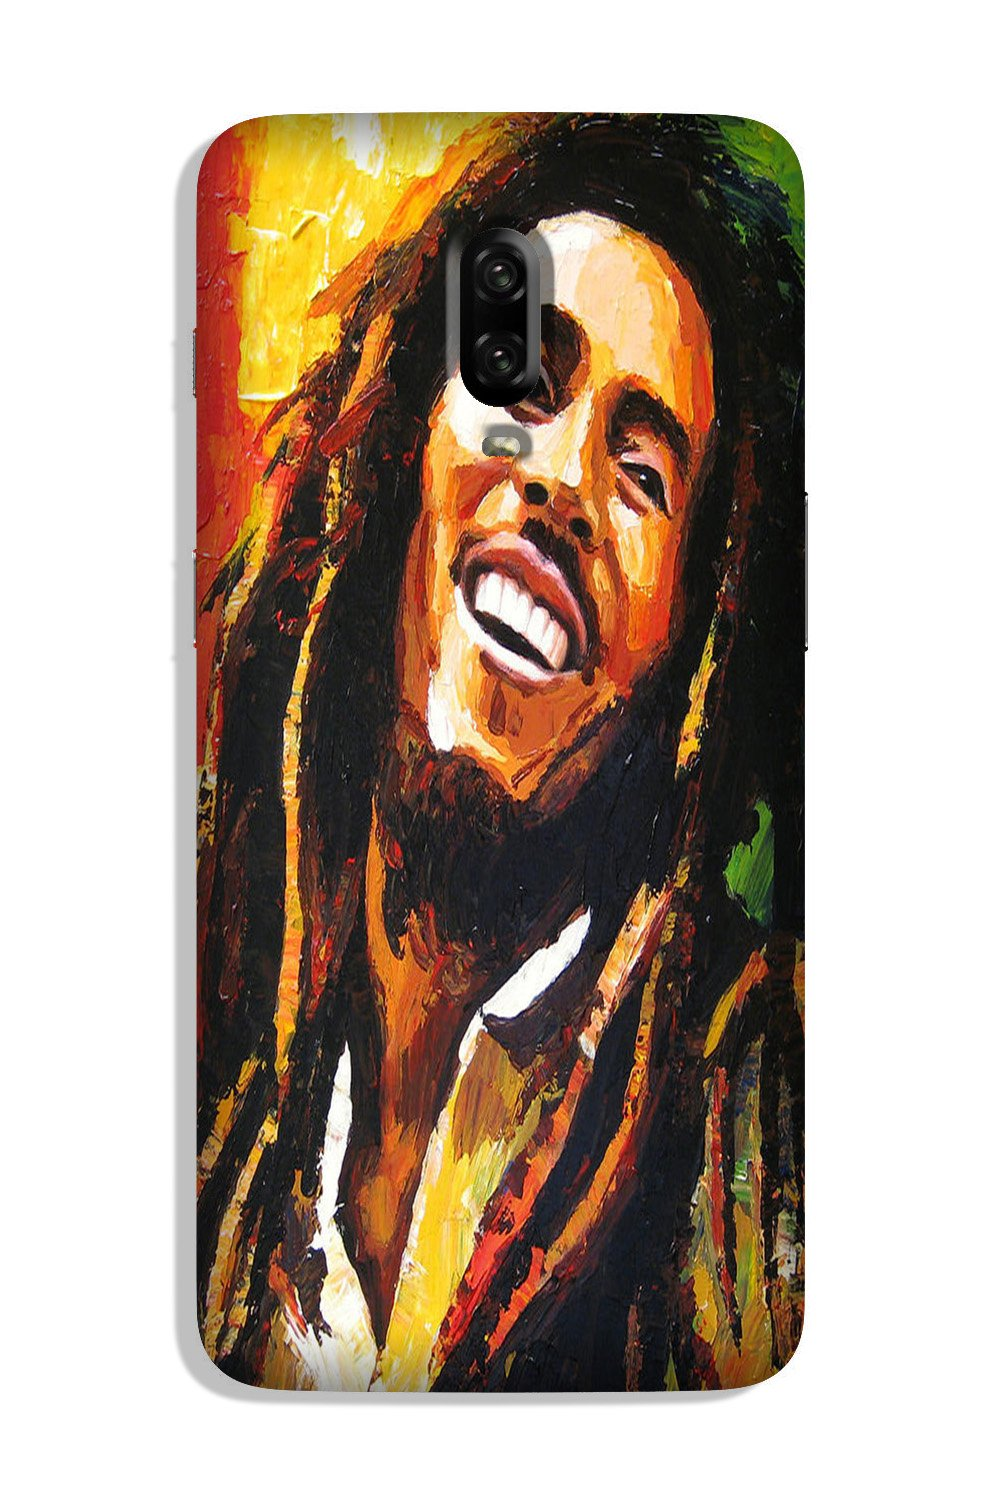 Bob marley Case for OnePlus 6T (Design No. 295)